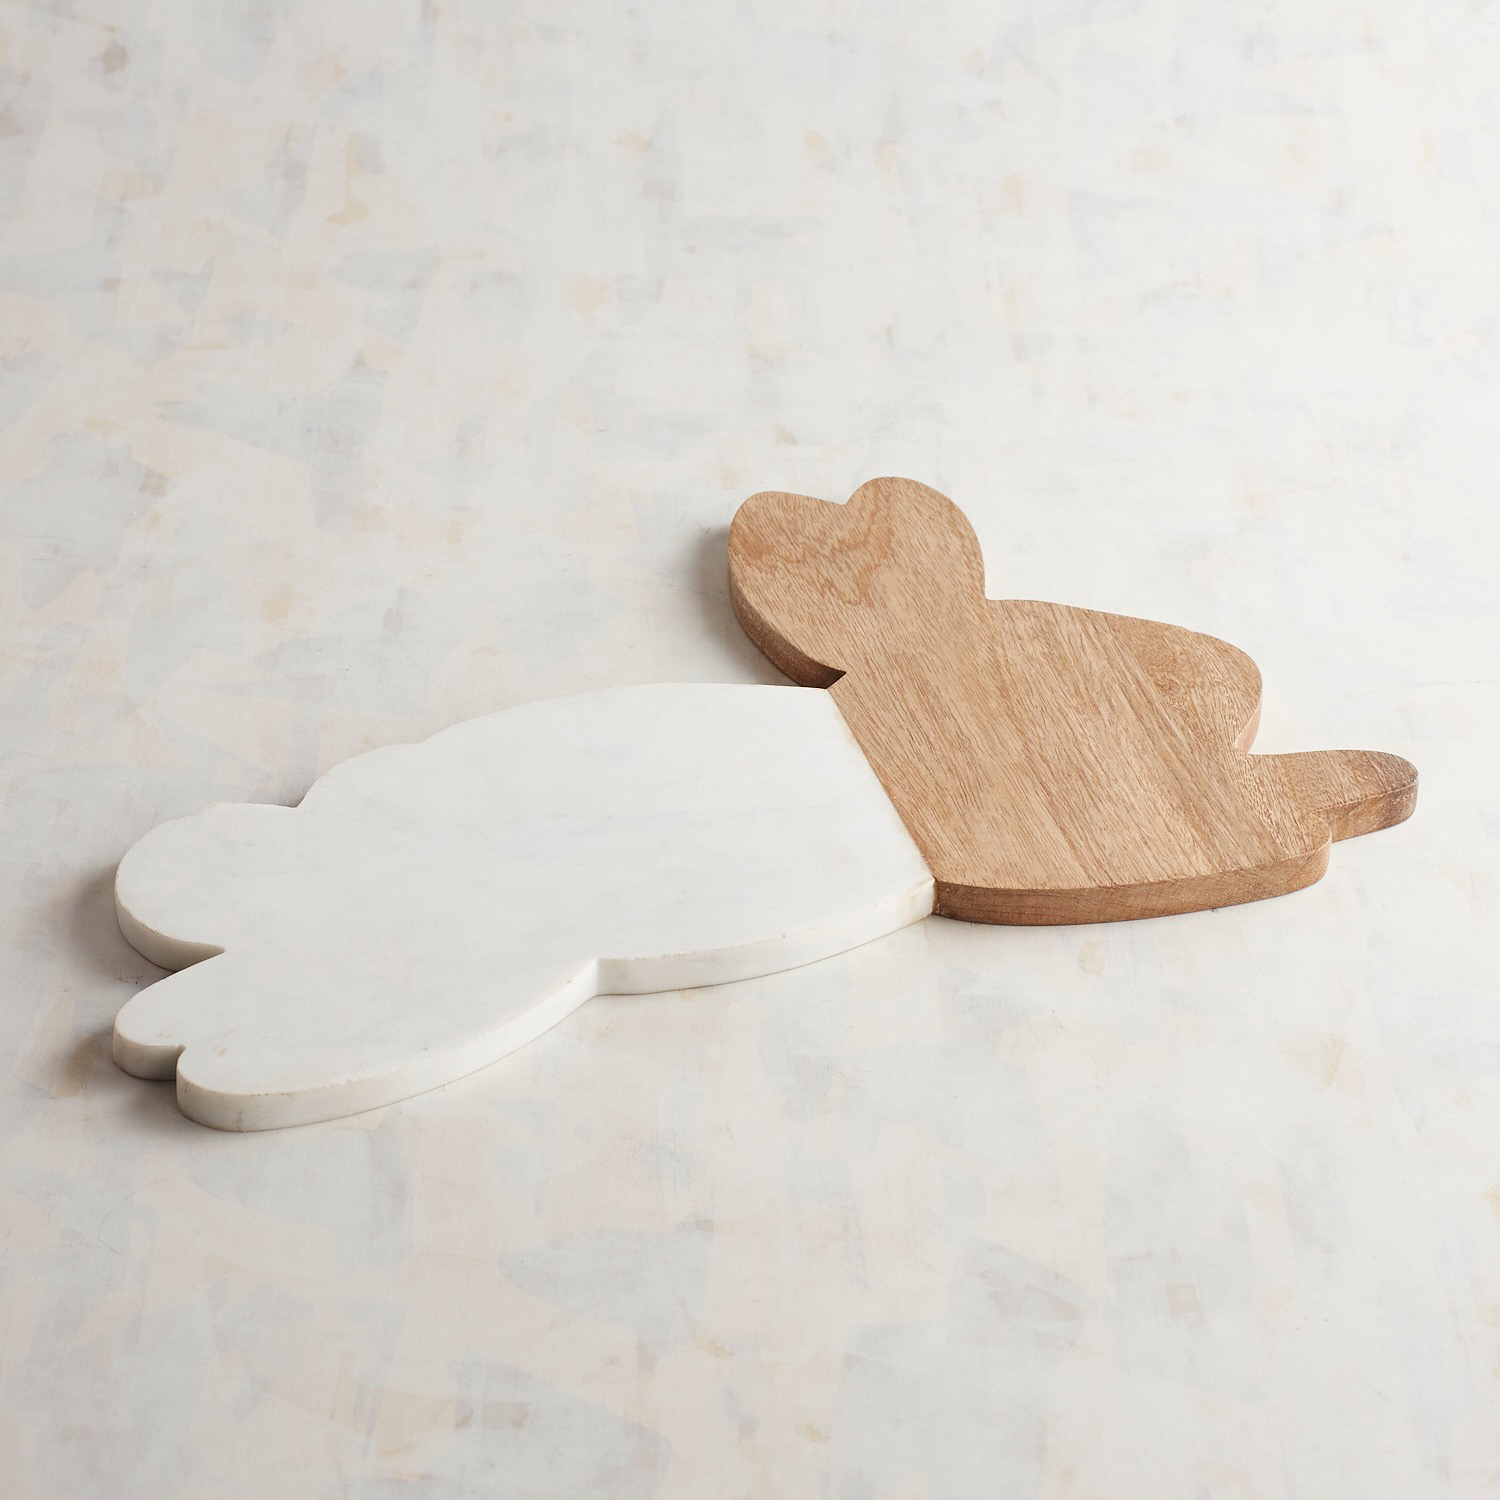 Bunny Marble & Wood Serving Board